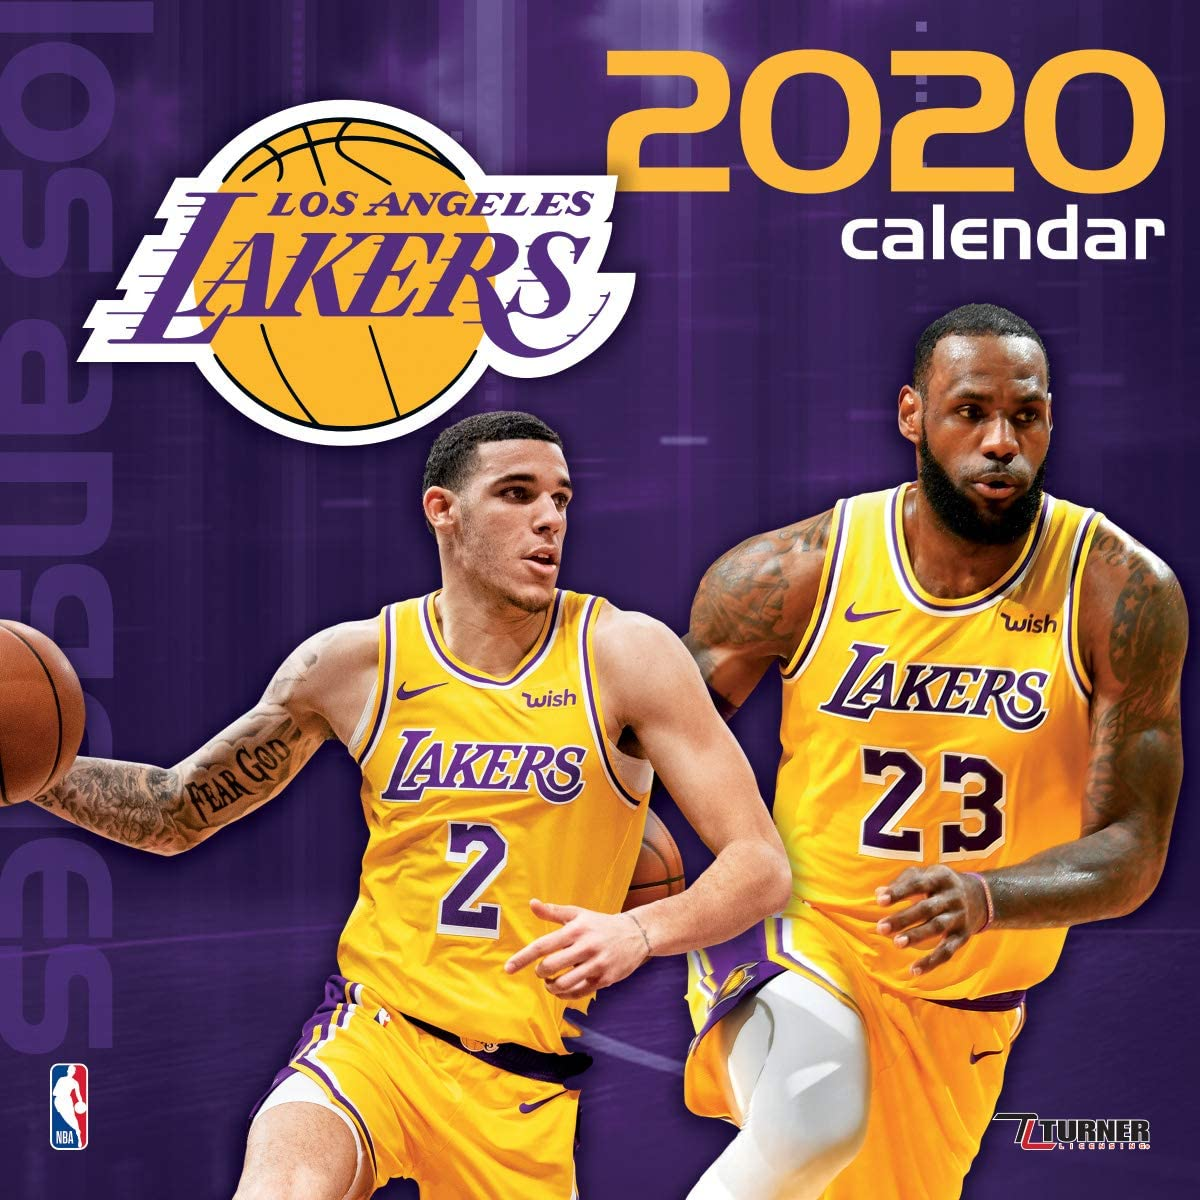 Los Angeles Lakers Amazon.com : Los Angeles Lakers 2020 Calendar : Office Products